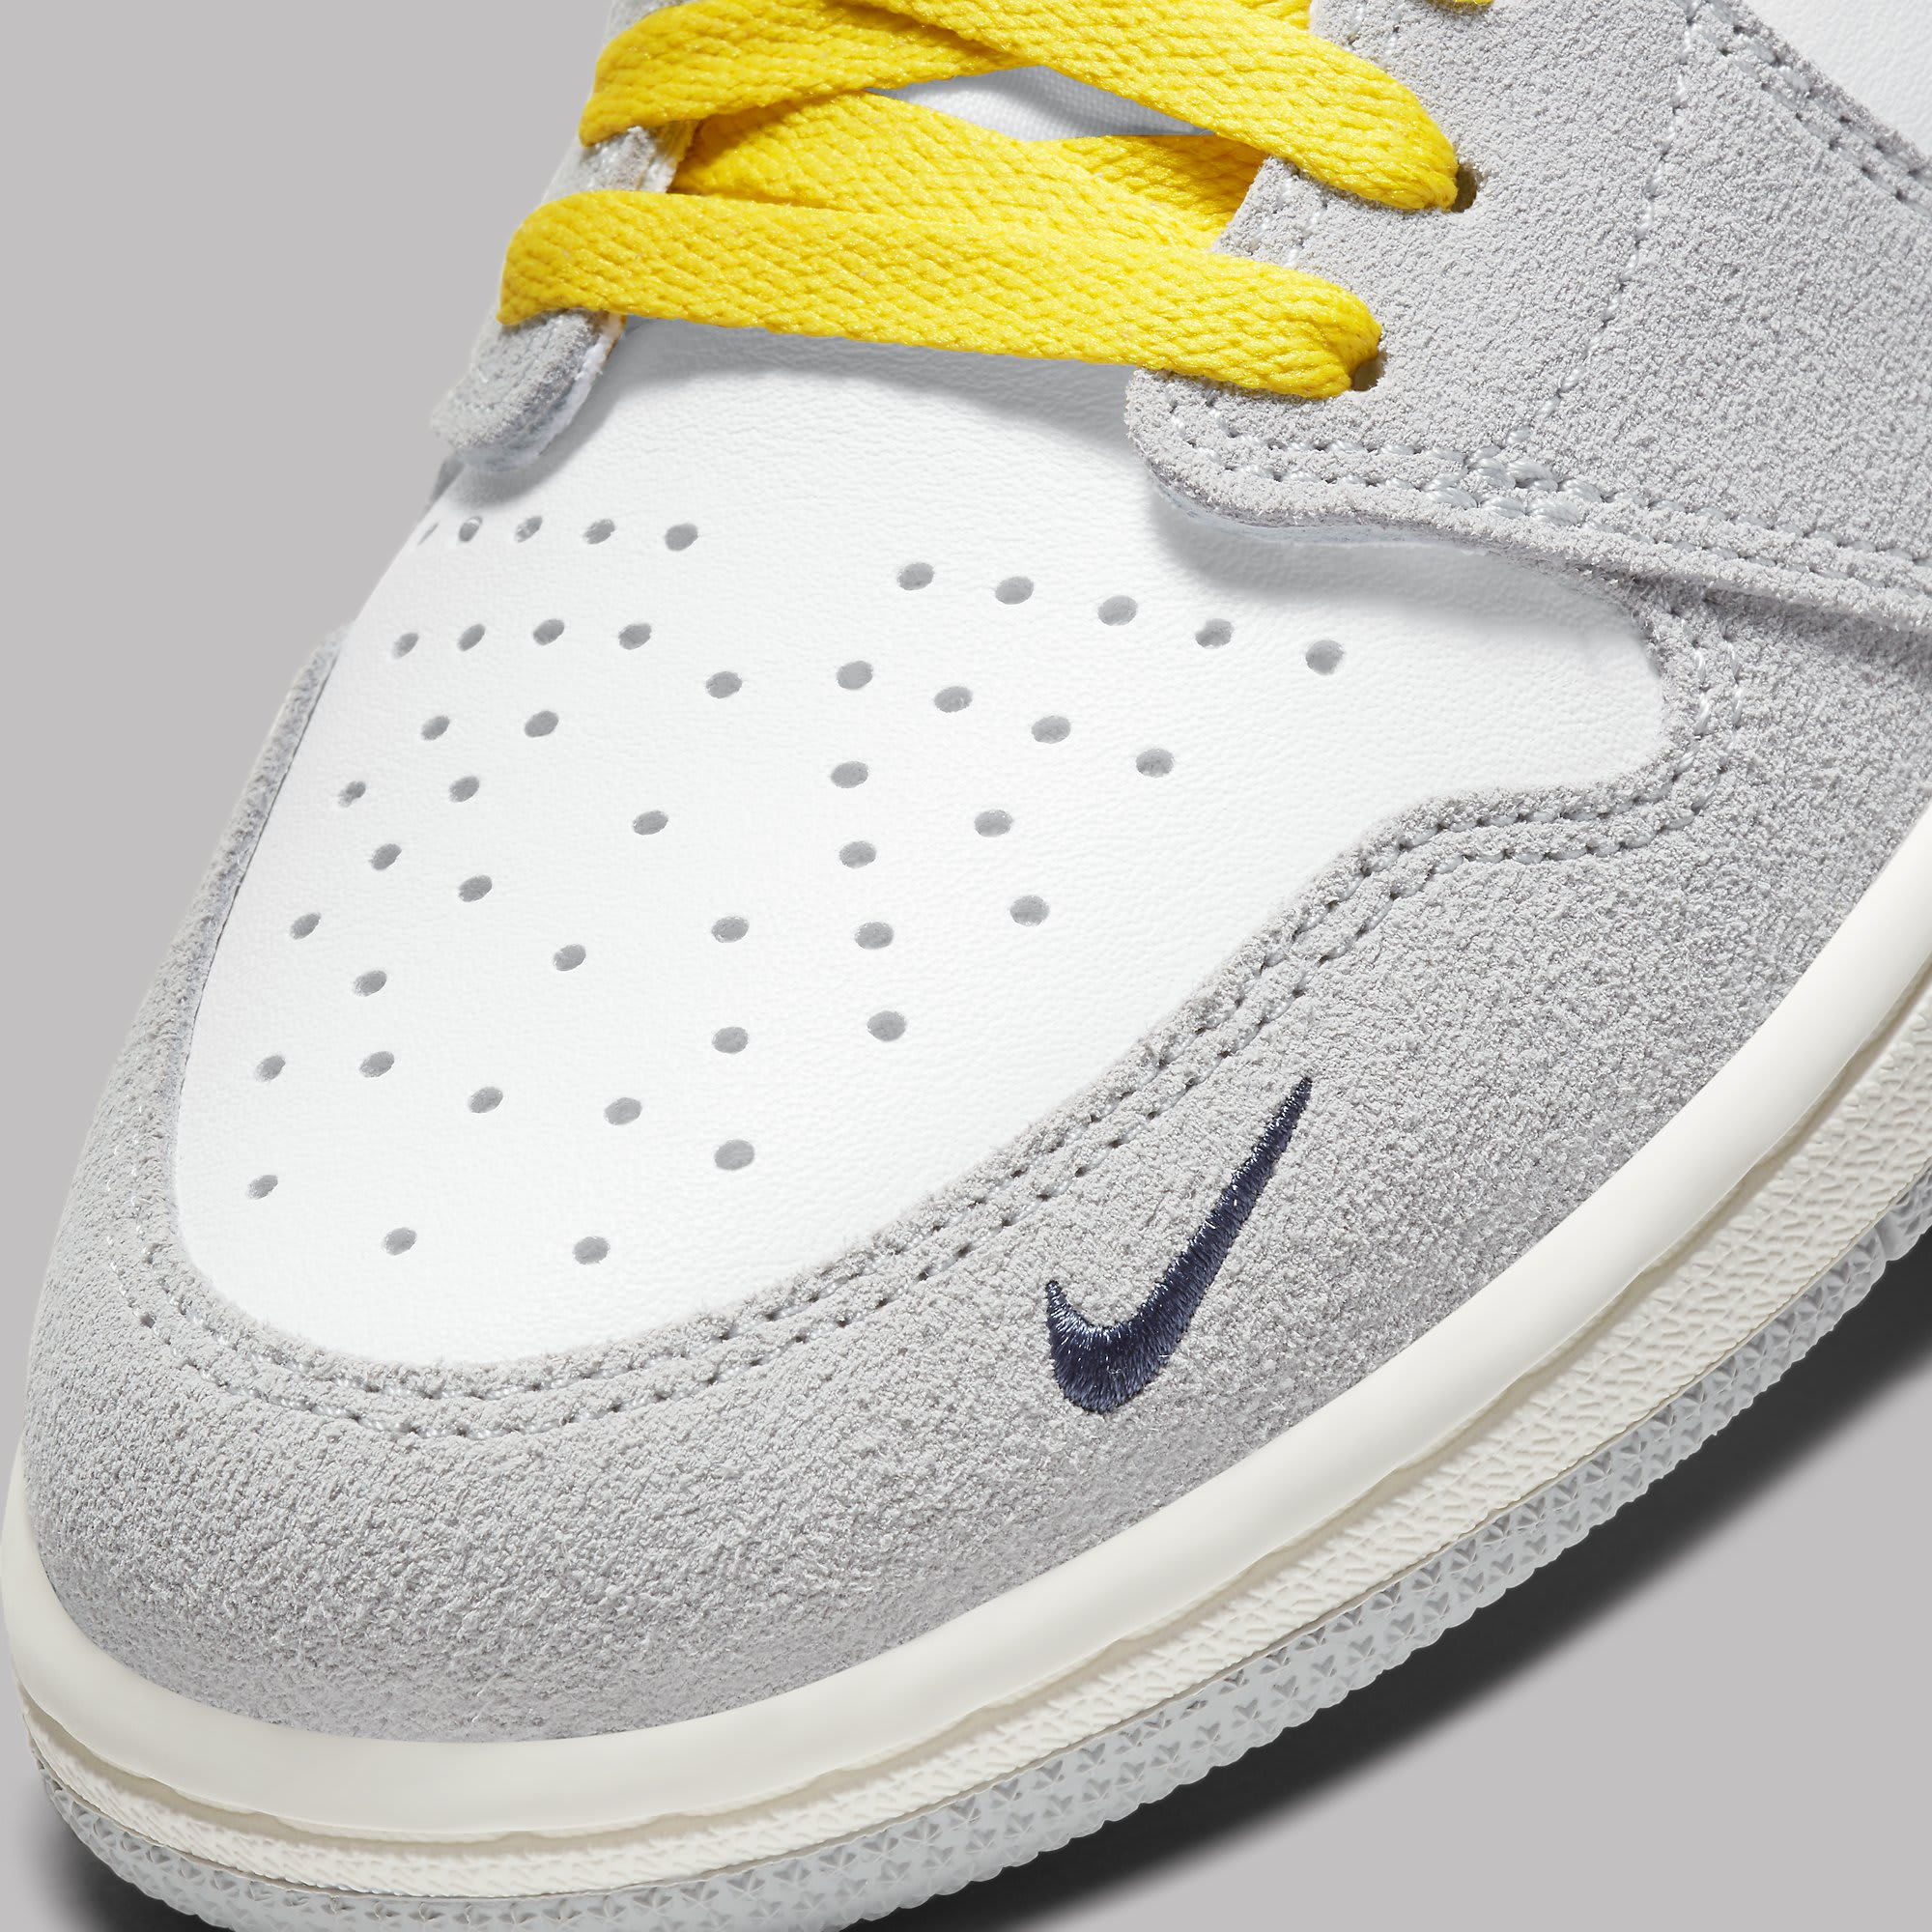 Air Jordan 1 High Switch White Light Smoke Grey Sail Tour Yellow Release Date CW6576-100 Toe